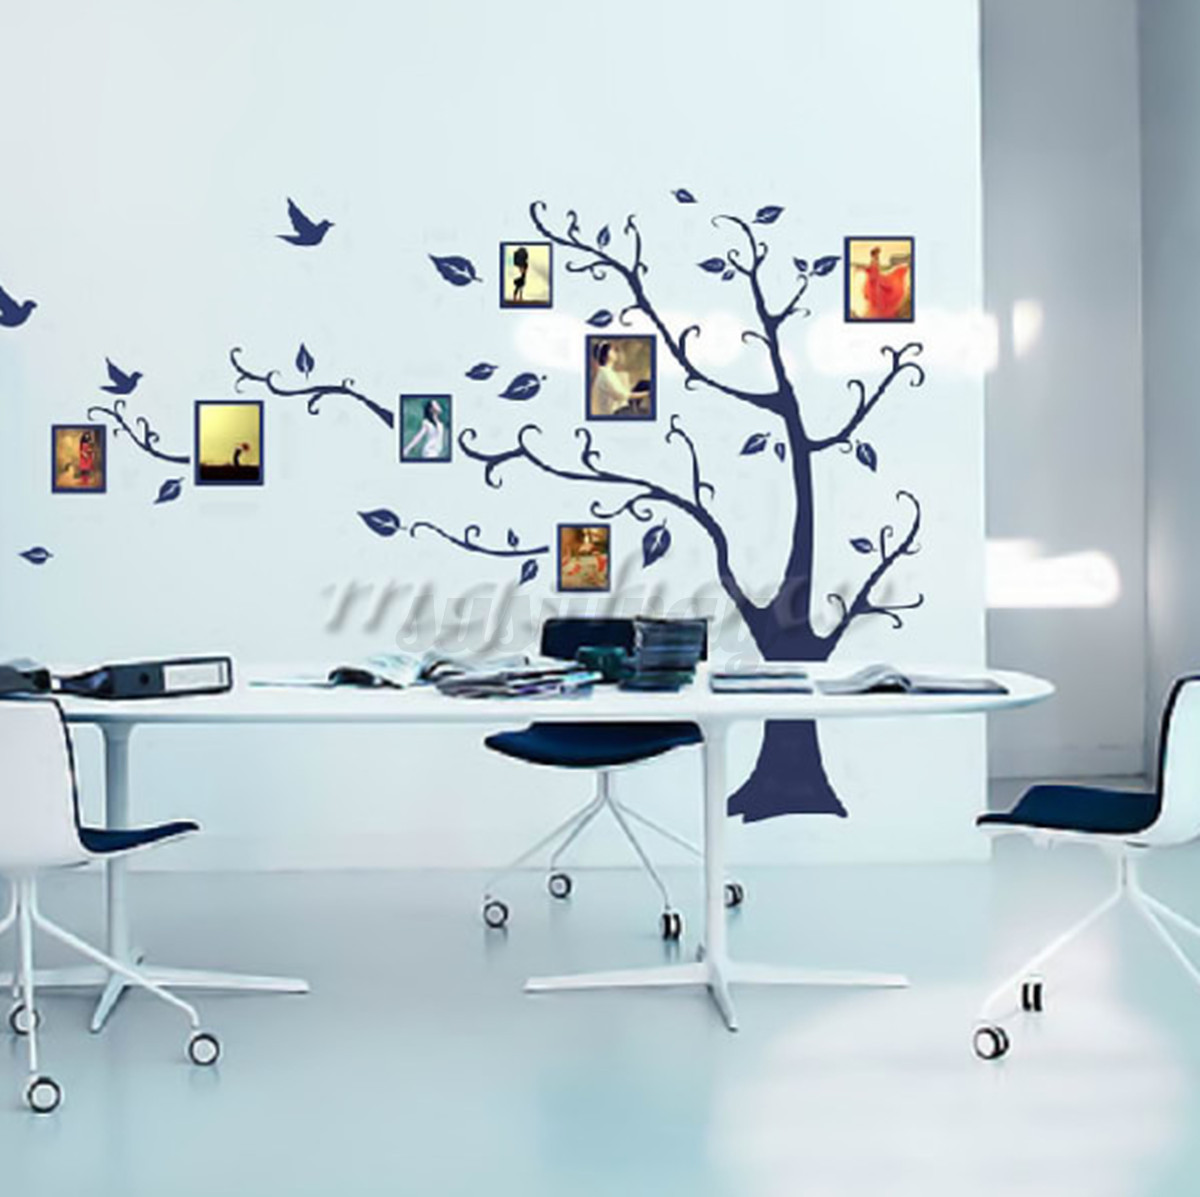 Wall sticker ebay images home wall decoration ideas wall sticker ebay choice image home wall decoration ideas wall sticker ebay images home wall decoration amipublicfo Images